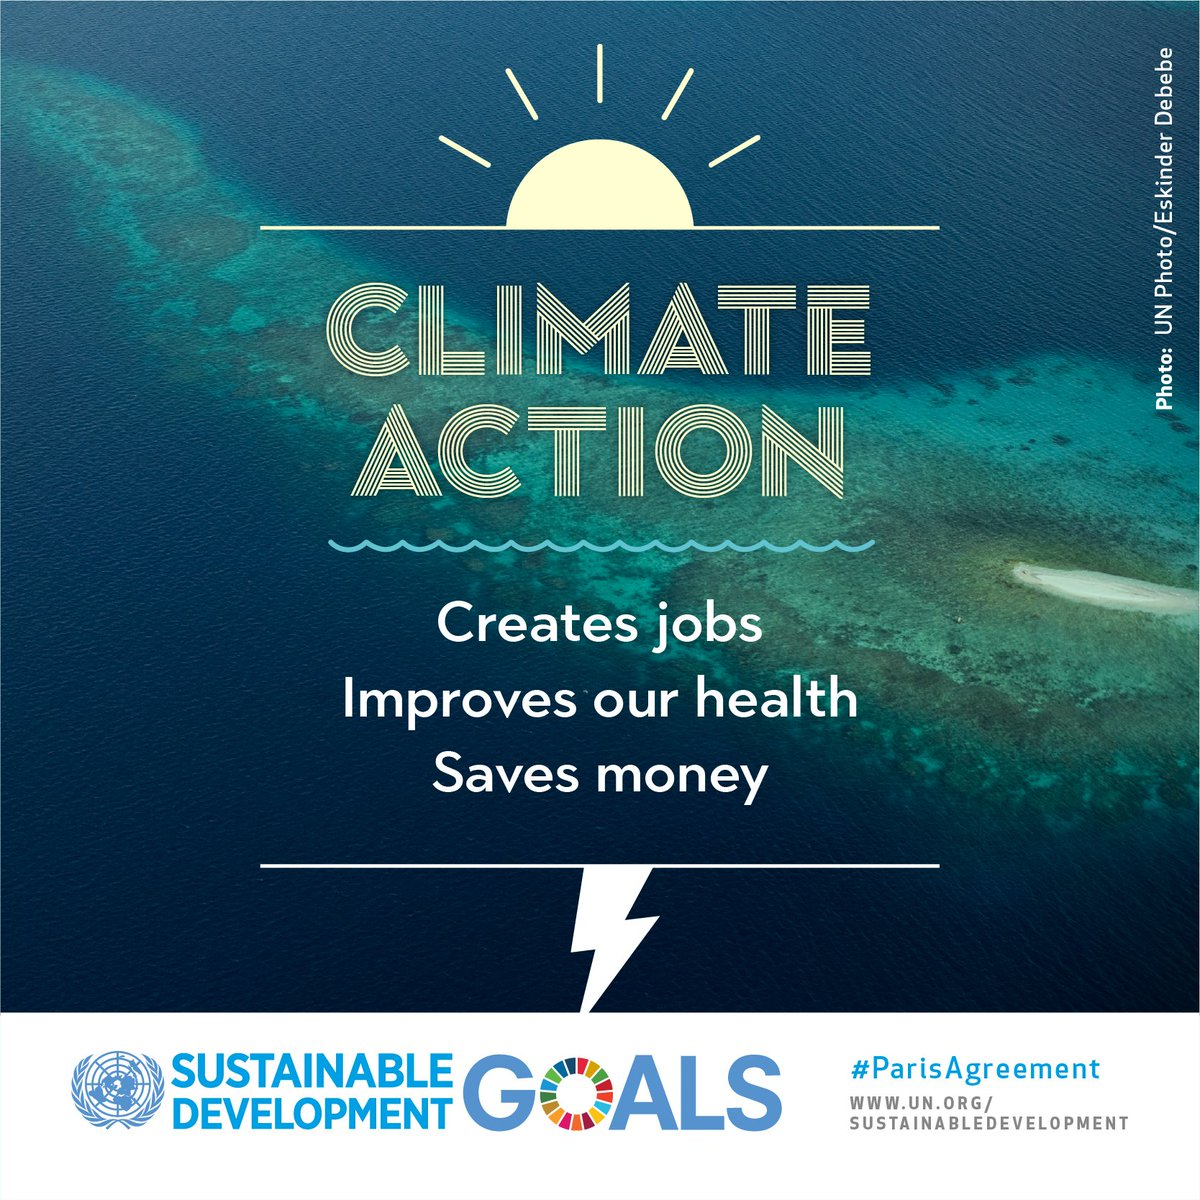 The #ParisAgreement on Climate Change is just the start. Climate action is unstoppable. Here&#39;s why:  http:// bit.ly/climateUN  &nbsp;   #GlobalGoals<br>http://pic.twitter.com/ZQKXcc0G7r